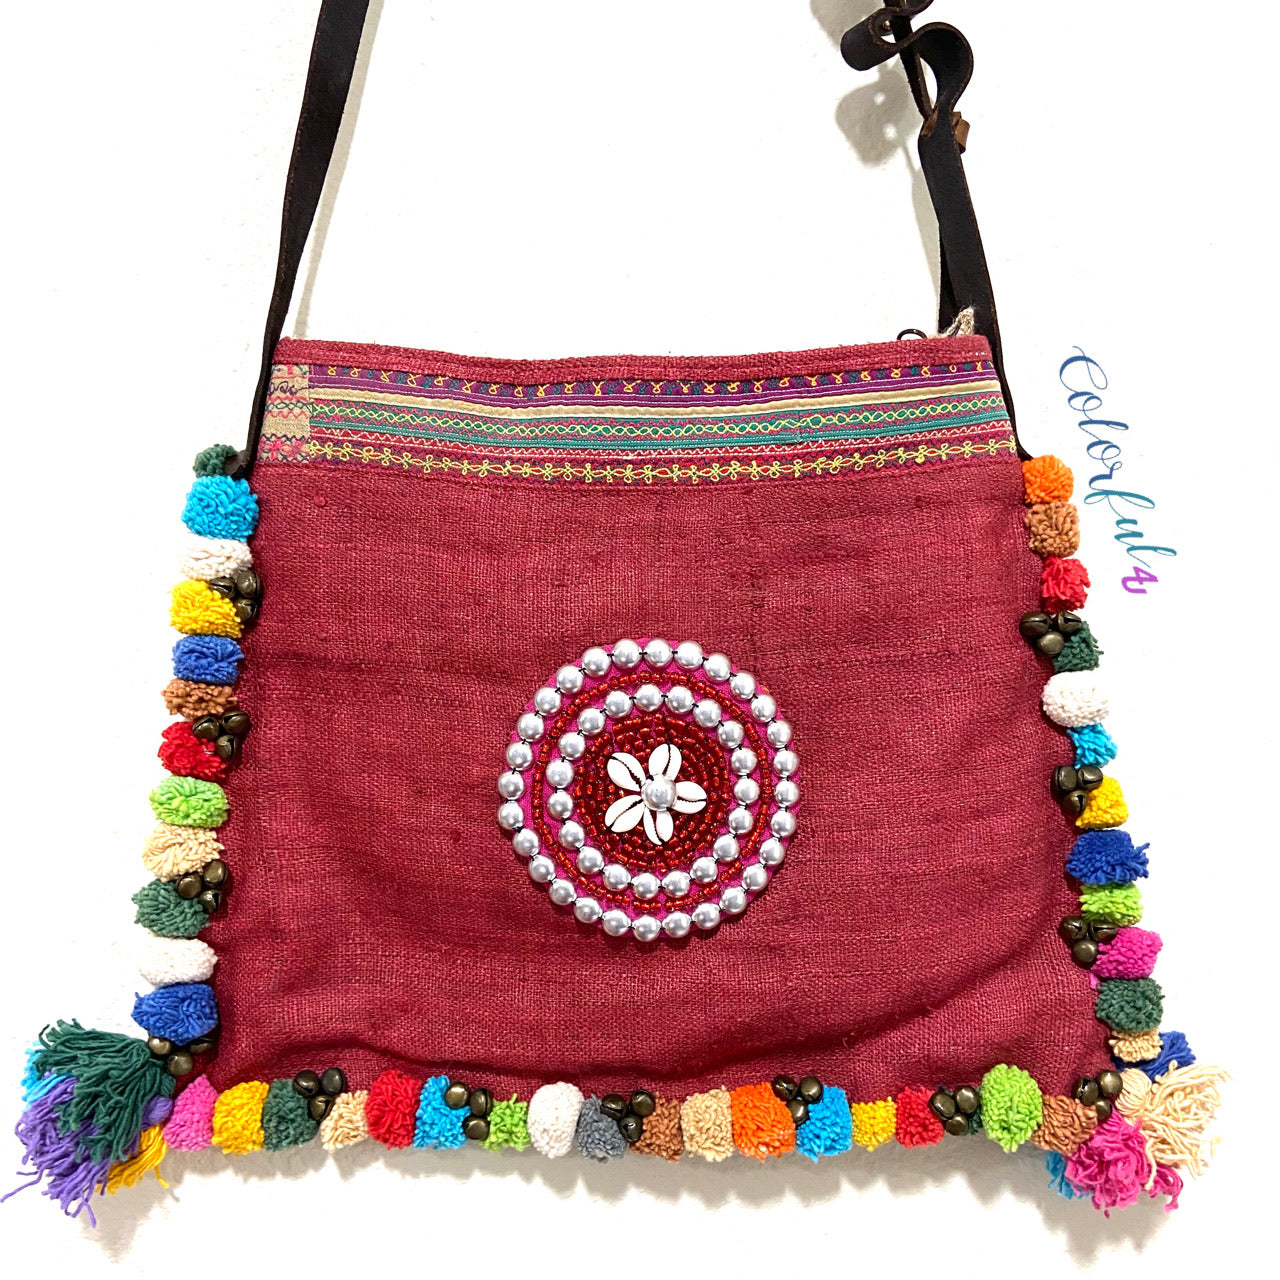 Bohemian Crossbody Bag with tassels